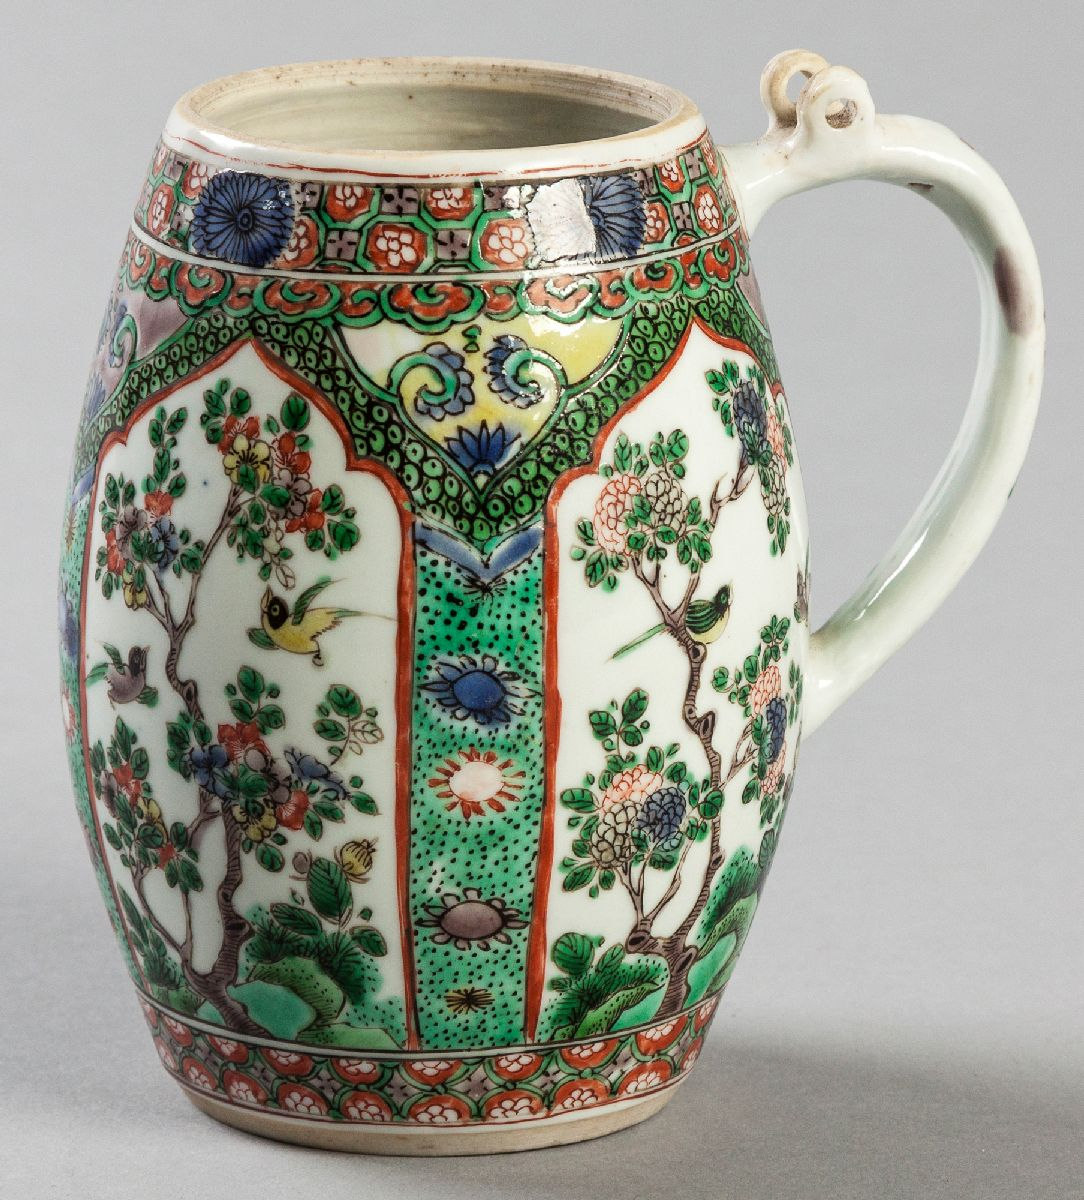 Lot 62 - A SUPERB CHINESE FAMILLE VERTE TANKARD, Circa 1690, from the Kangxi period, with panels of birds